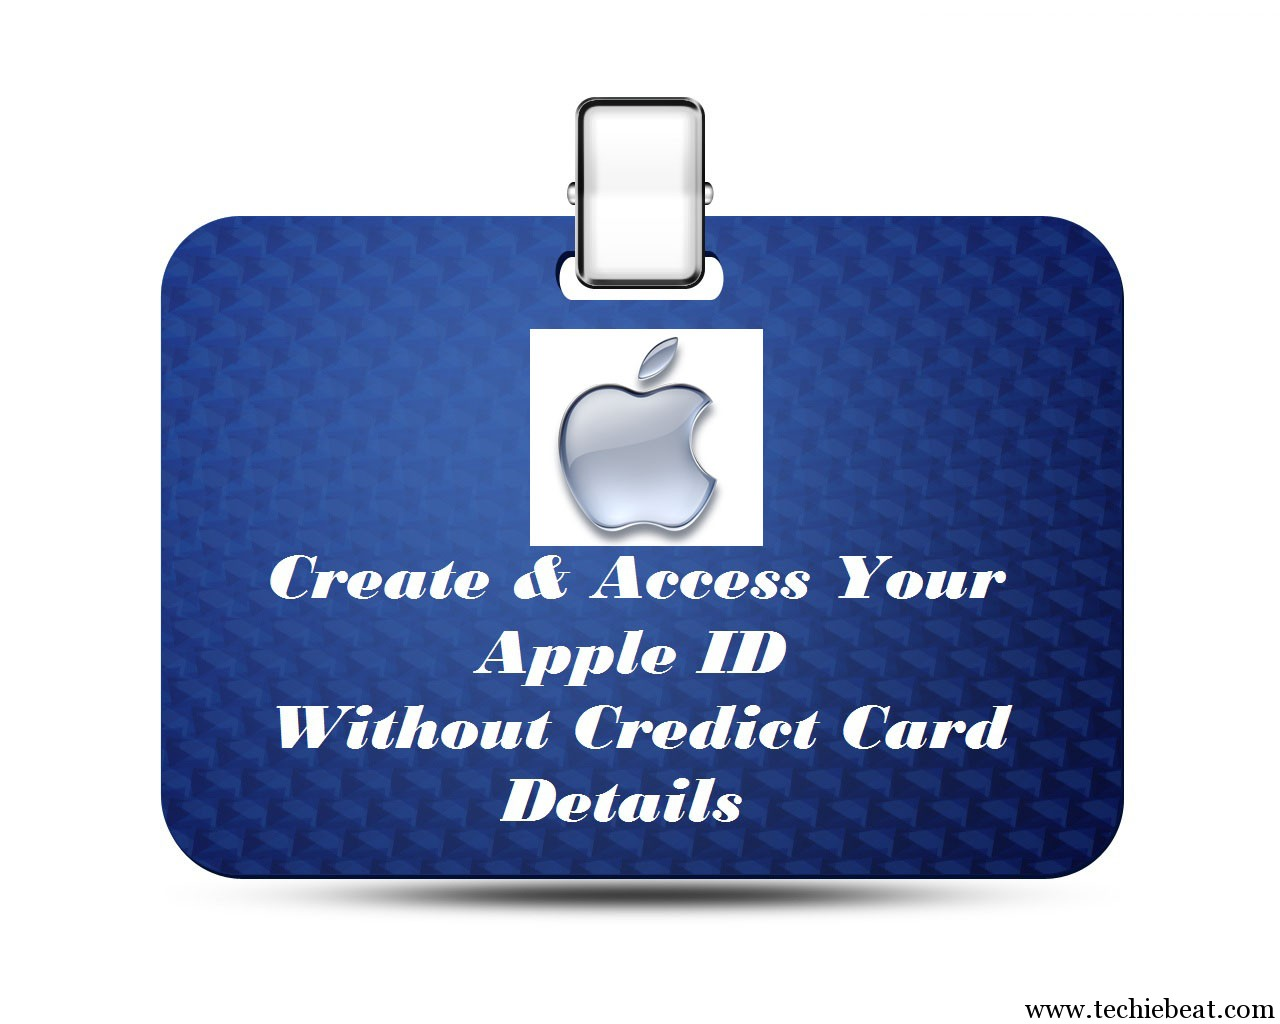 Create & Access Free Apple ID without Credit Card | Techiebeat